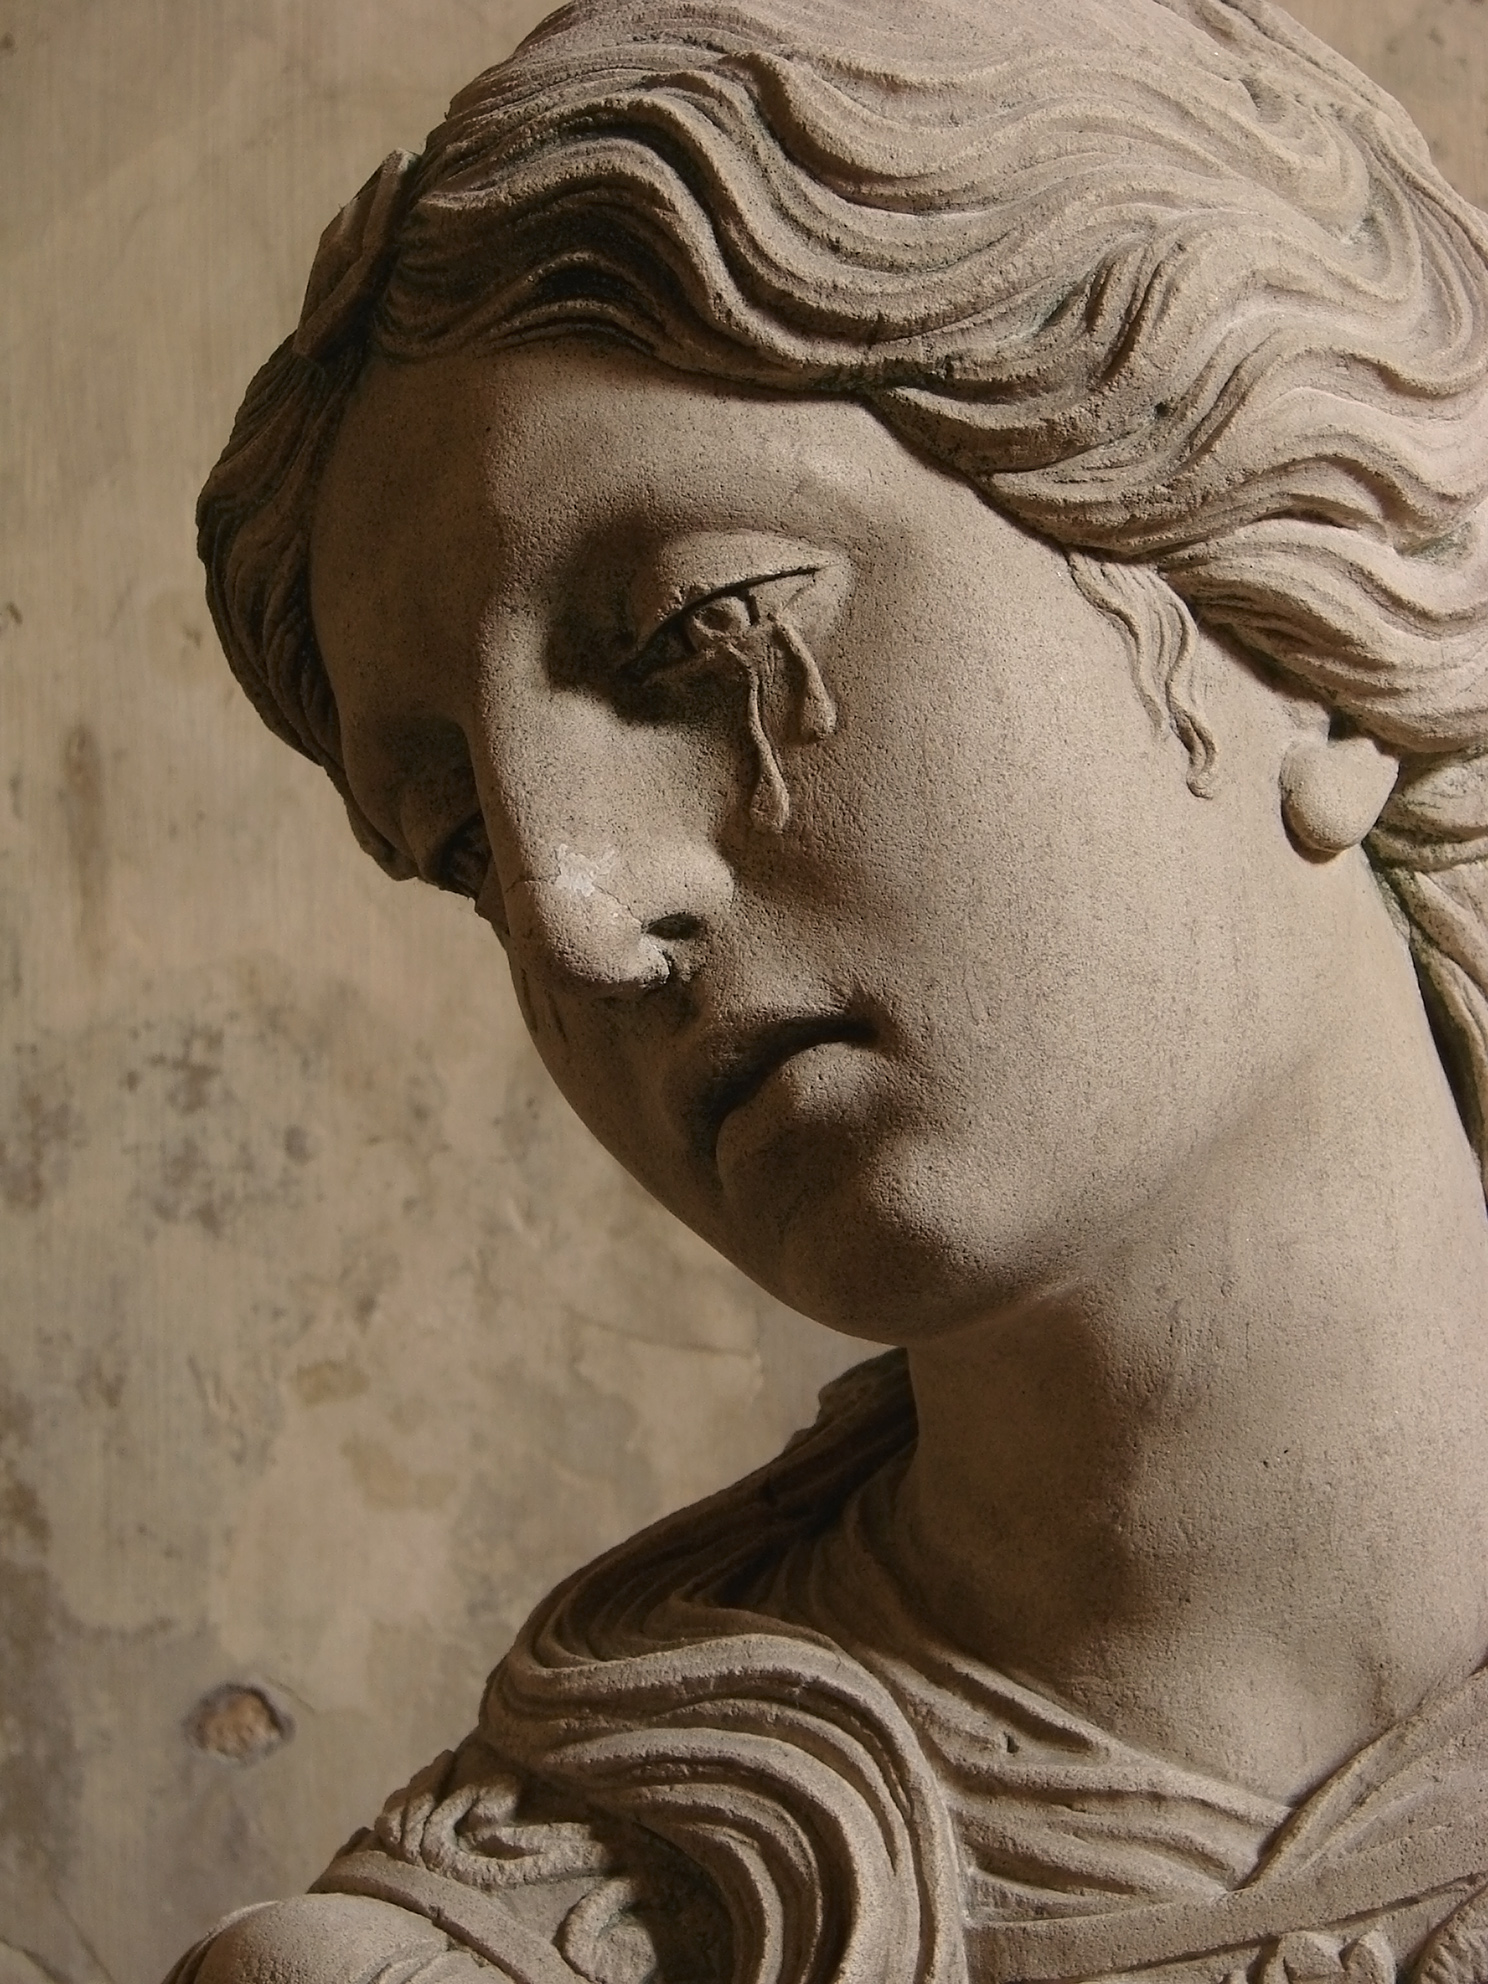 crying-statue-Sépulcre_Arc-en-Barrois_111008_11.jpg